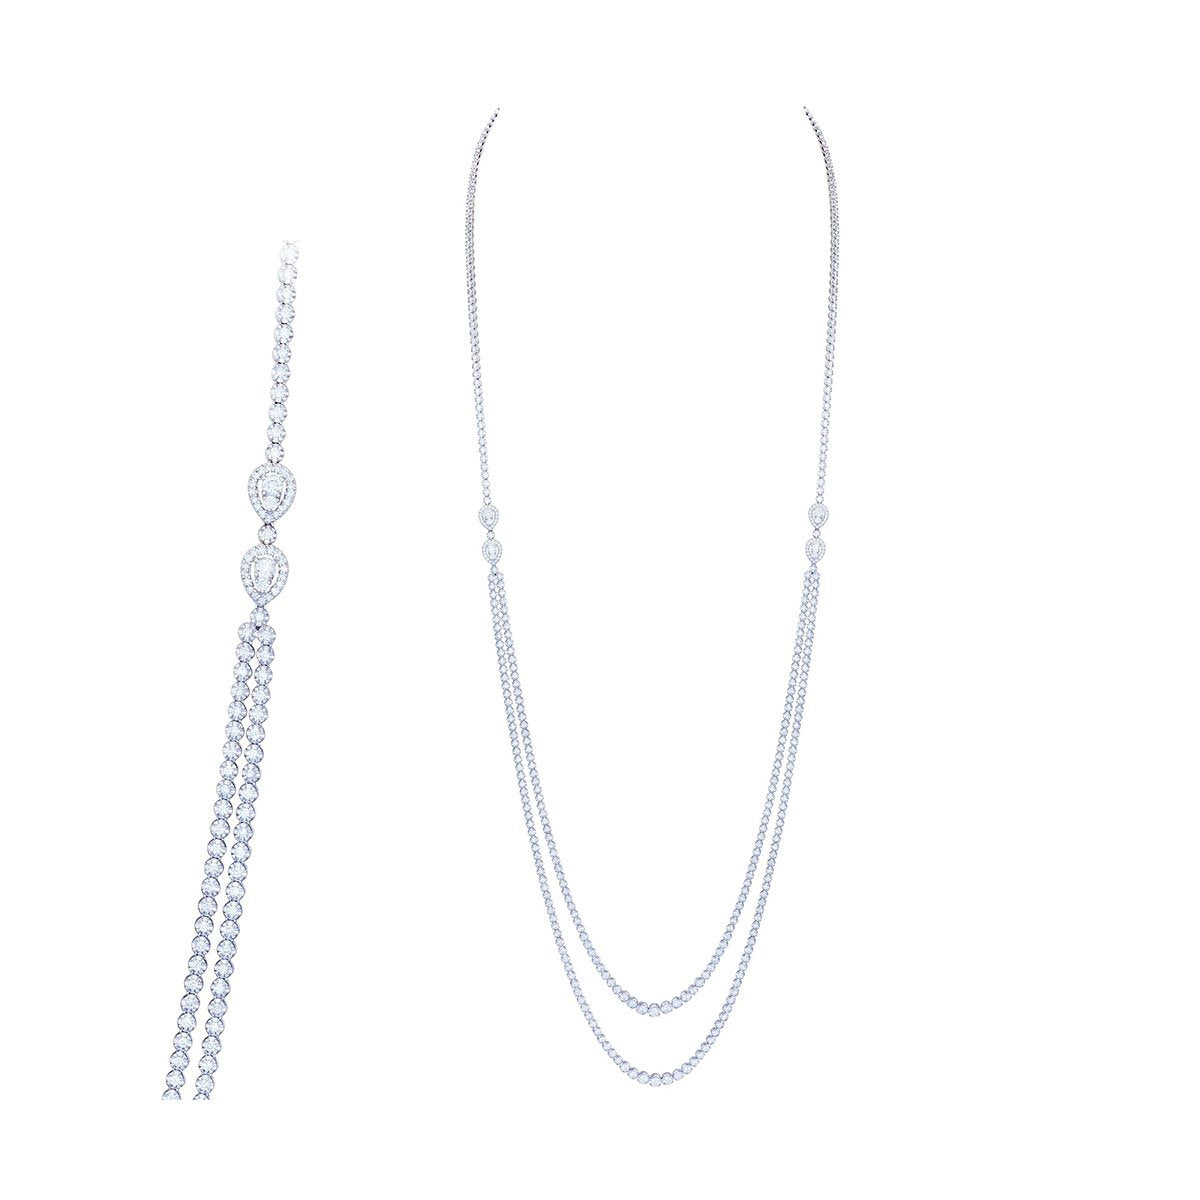 White Gold Deep Diamond Drop Necklace with a Double Chain